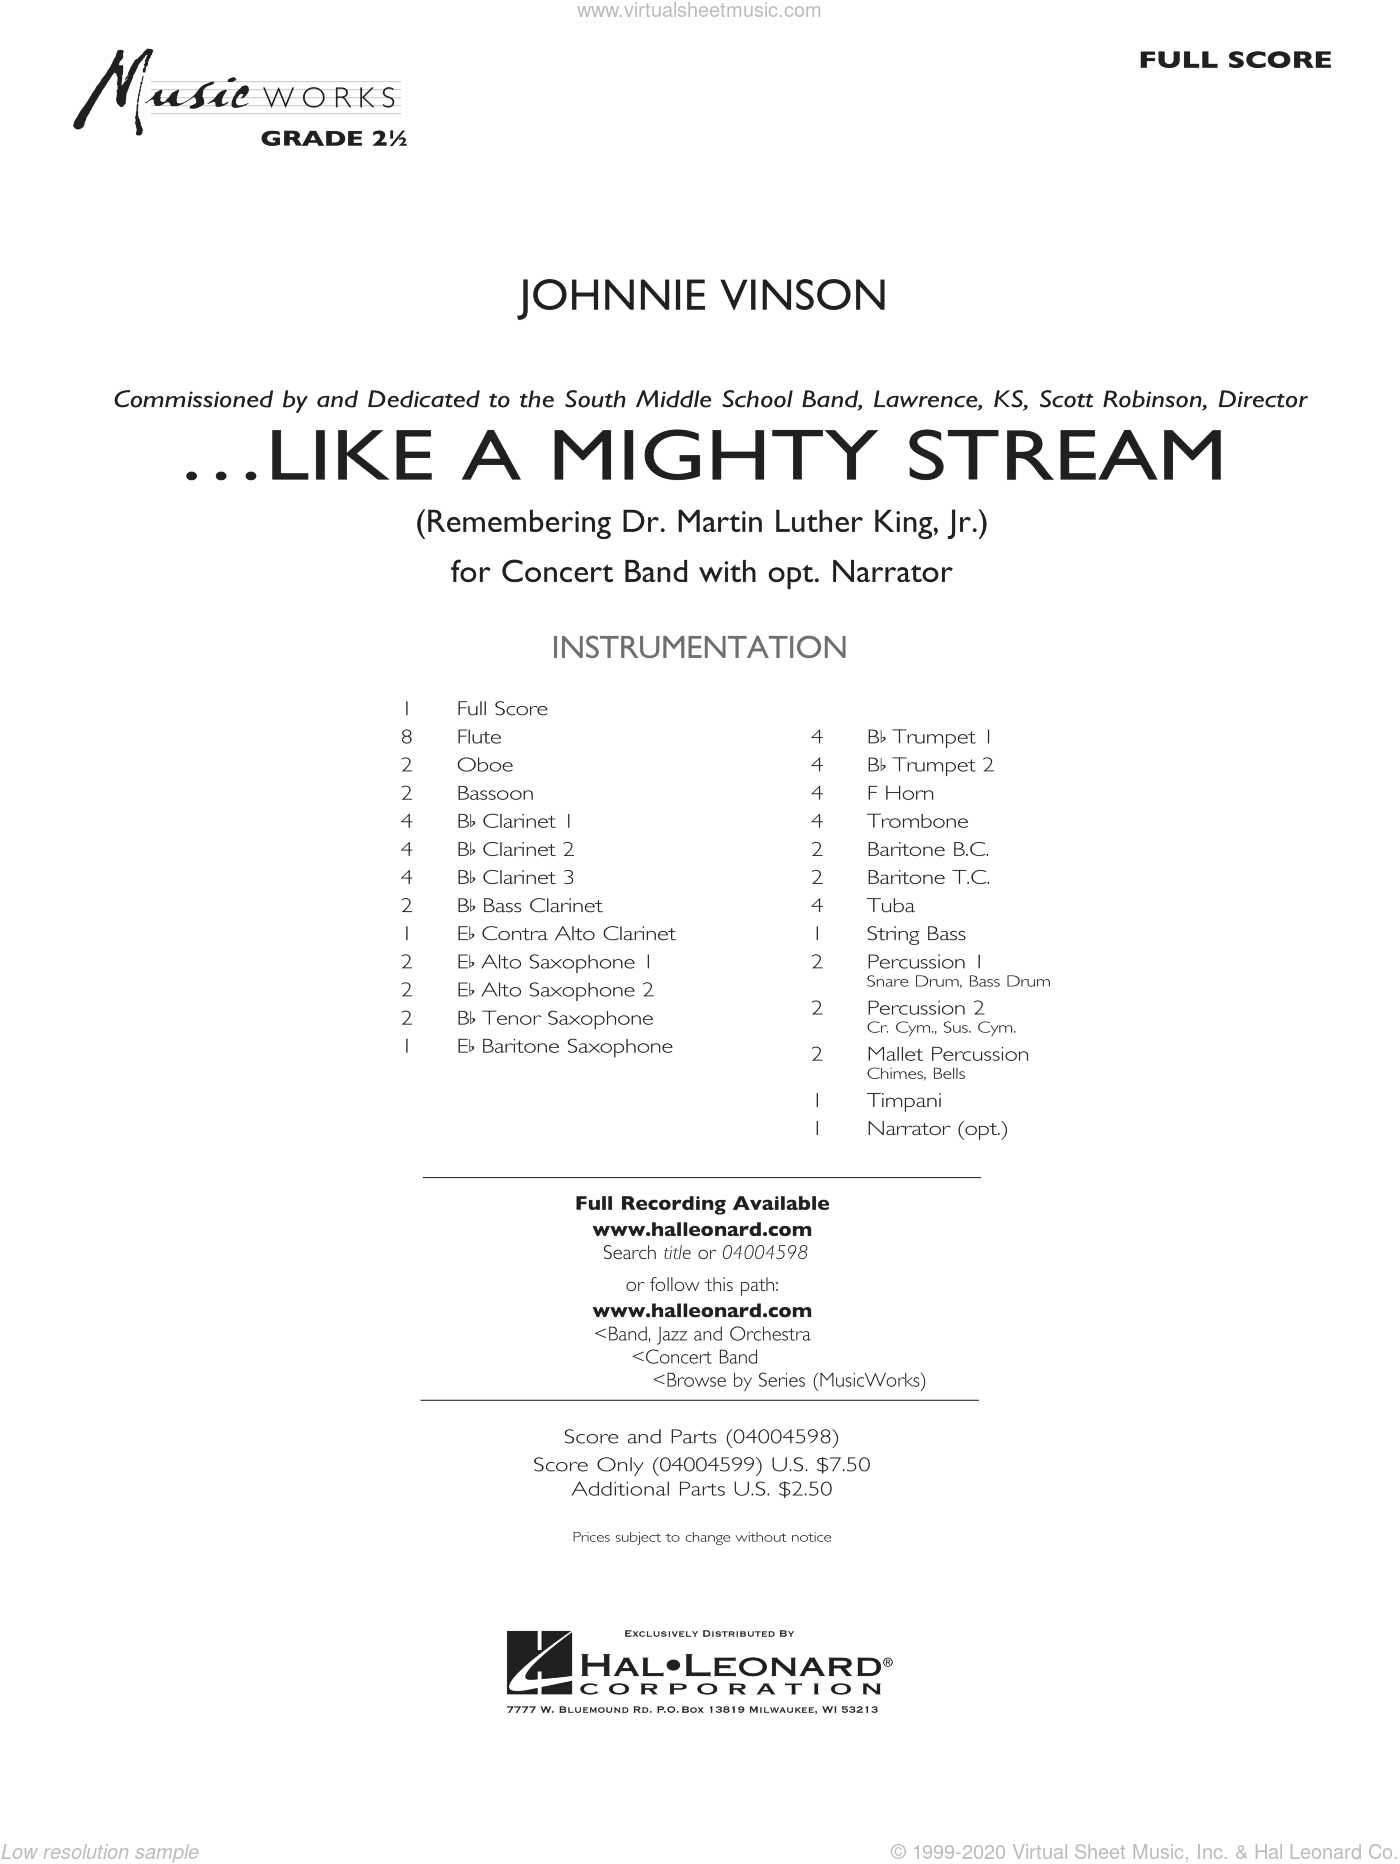 Like a Mighty Stream (for Concert Band and Narrator) sheet music for concert band (full score) by Johnnie Vinson